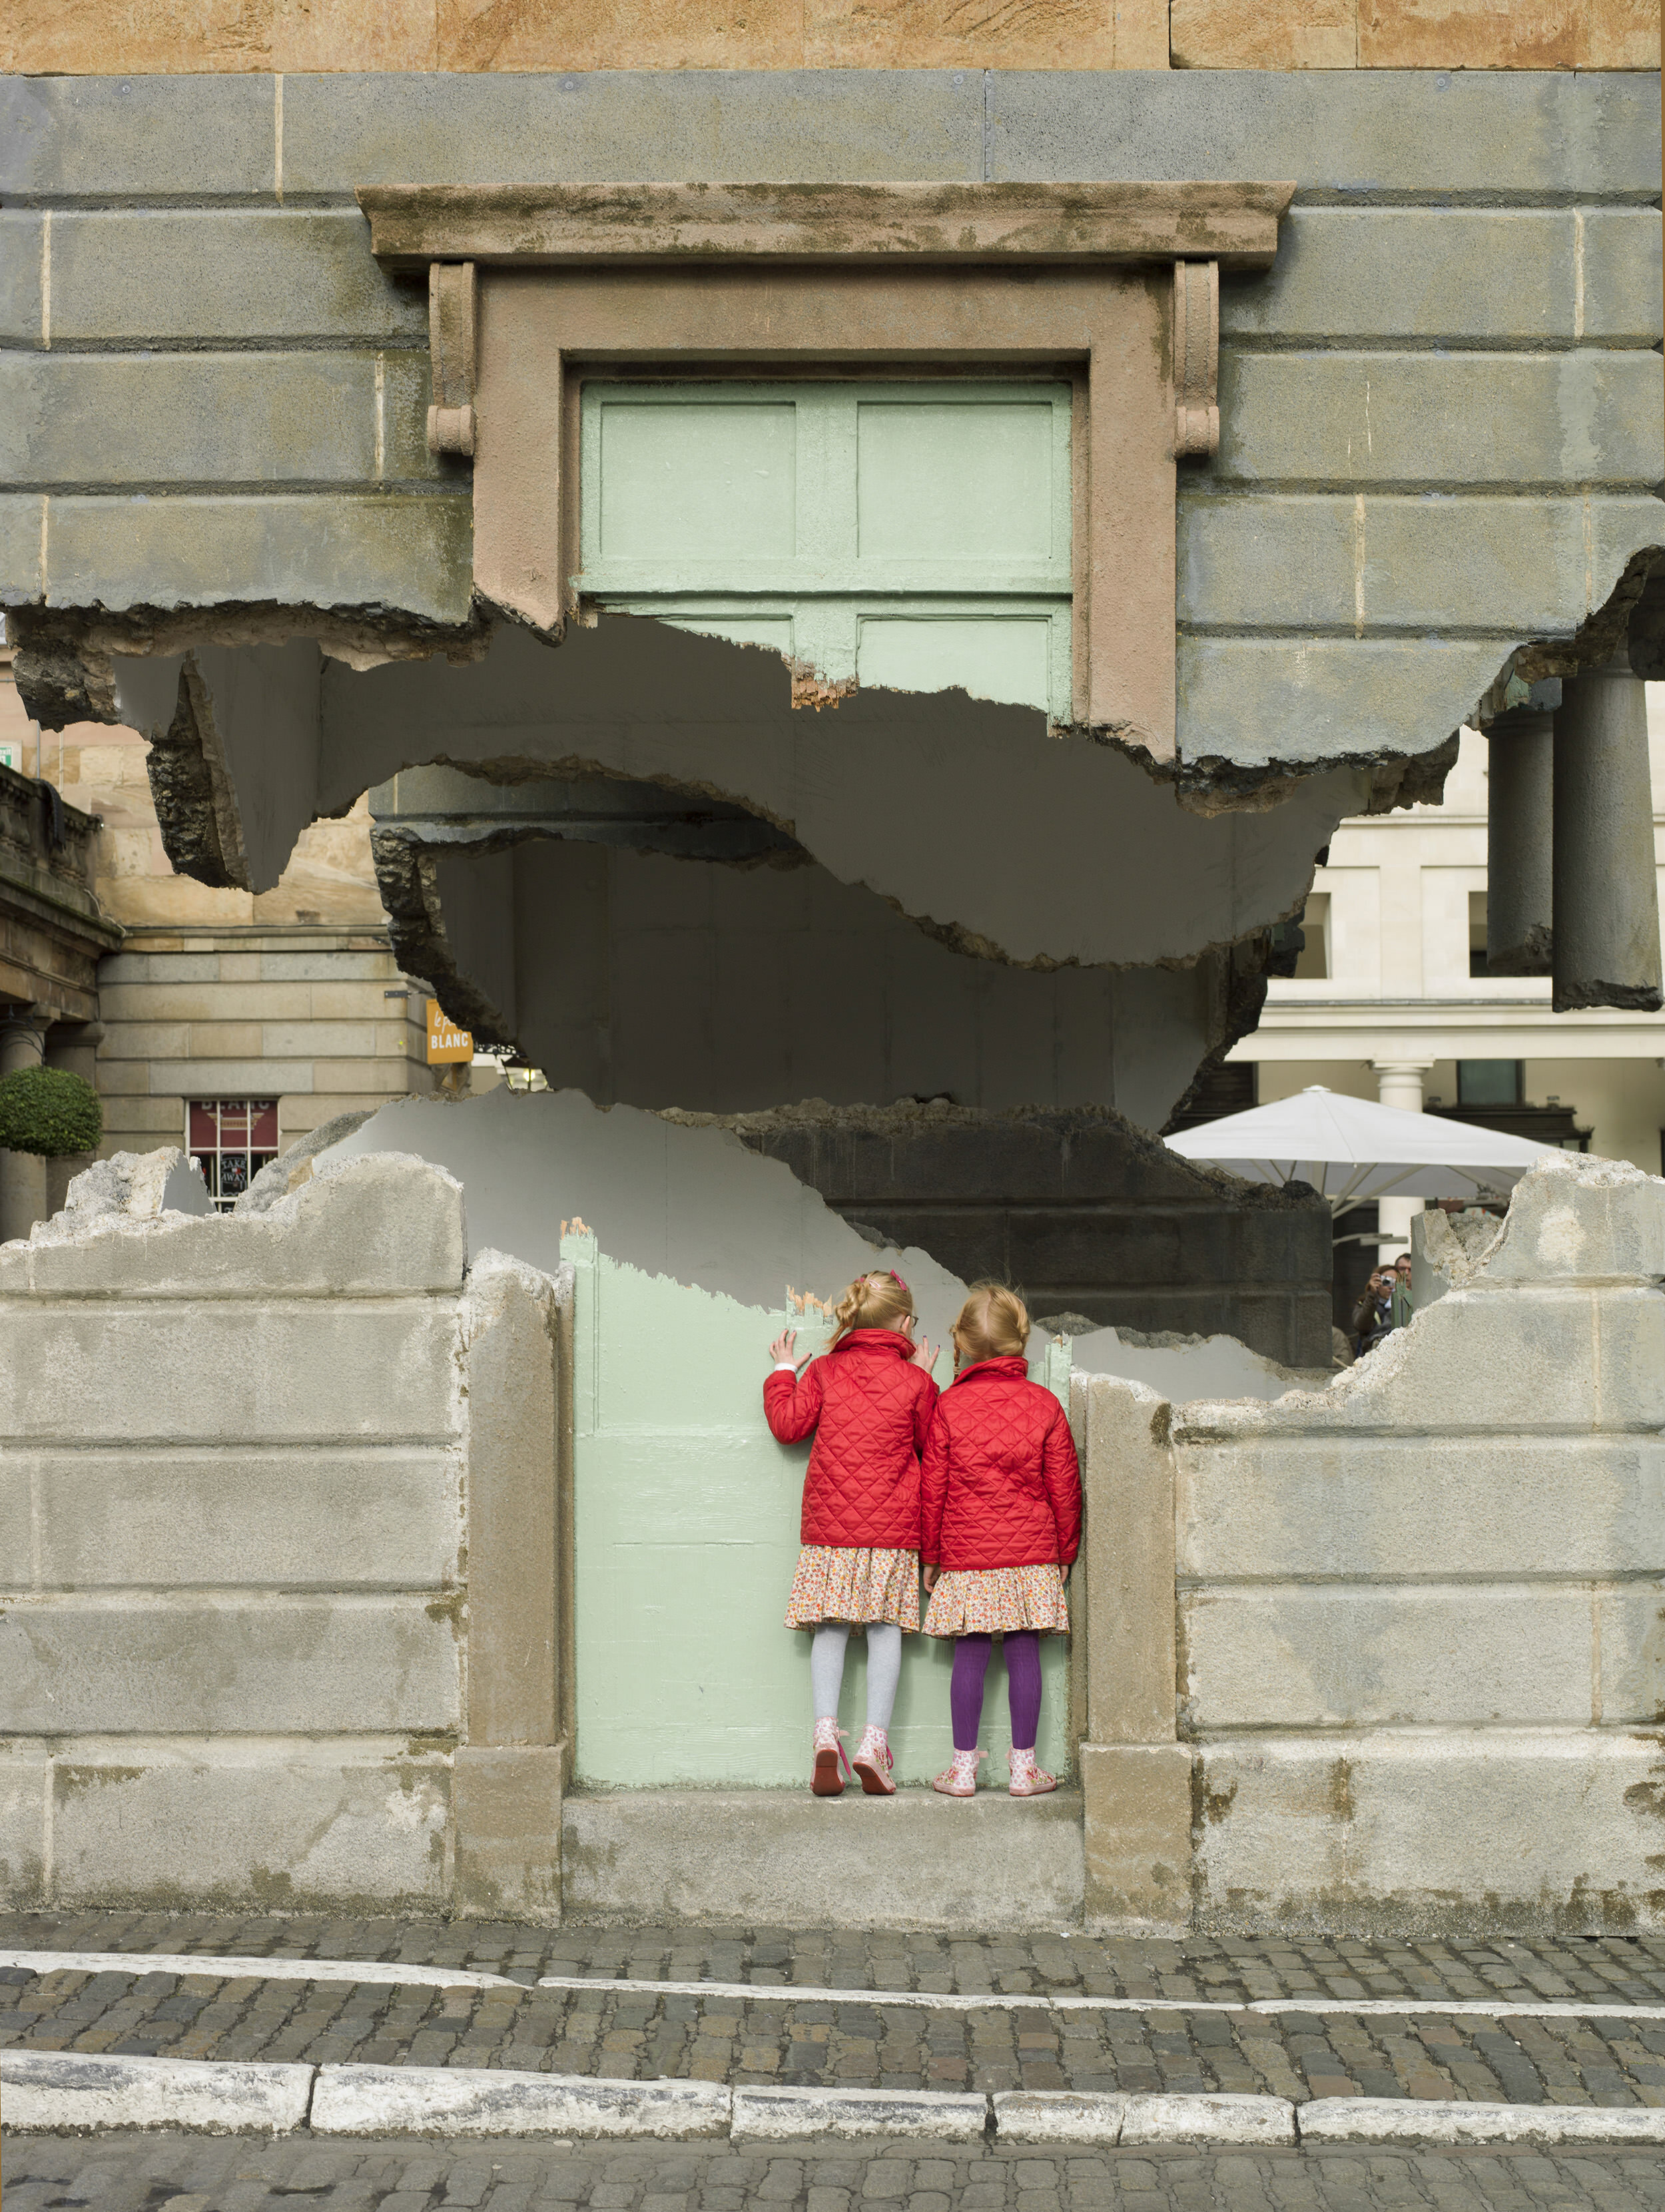 2. Alex Chinneck - Take my lightning but don't steal my thunder - Image by Chris Tubbs.jpg